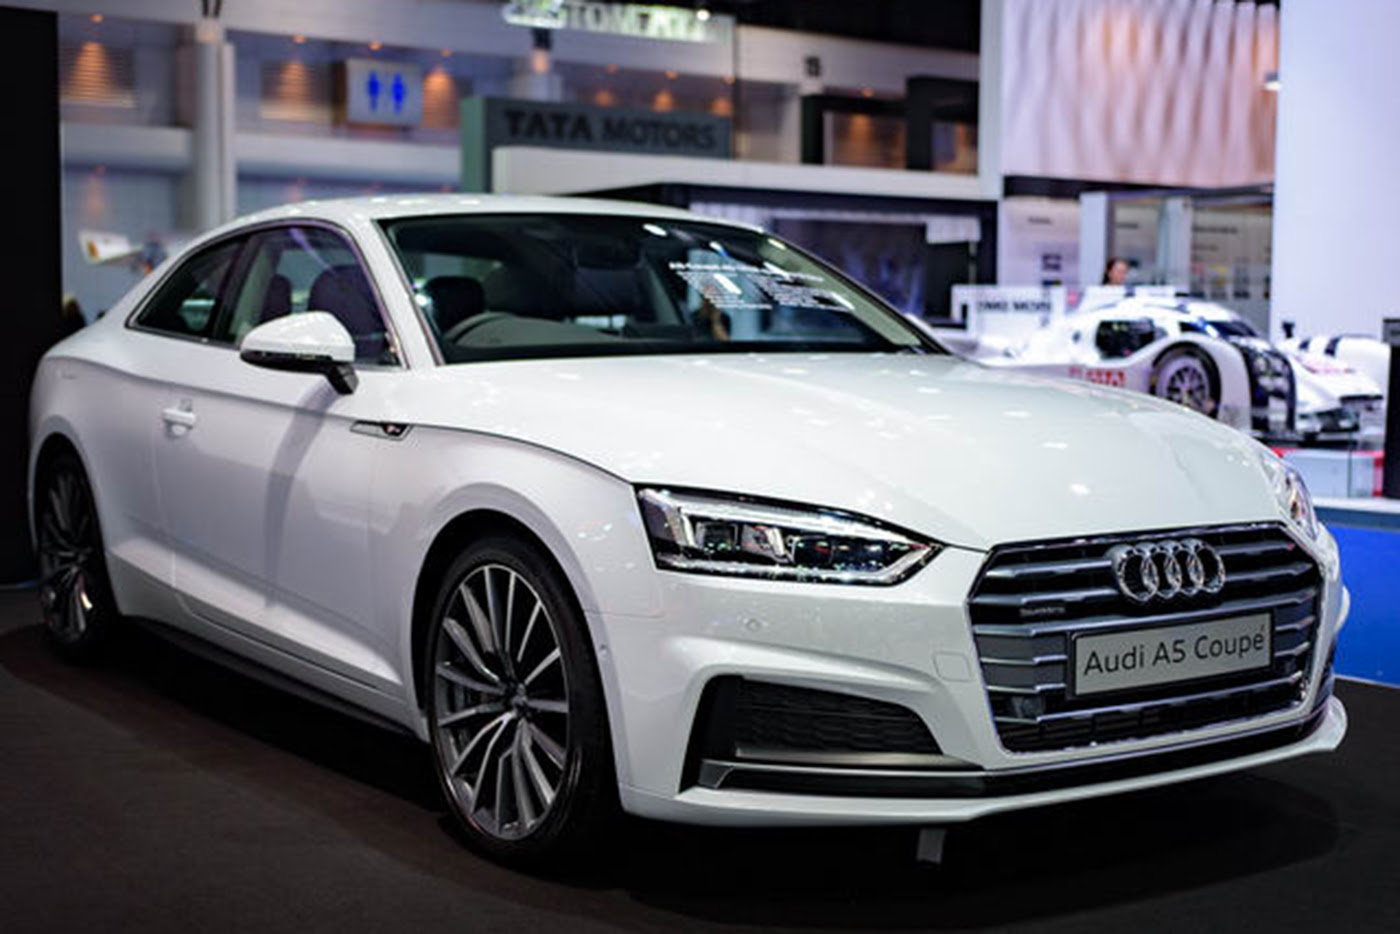 audi-a5-coupe-2017-4.jpg